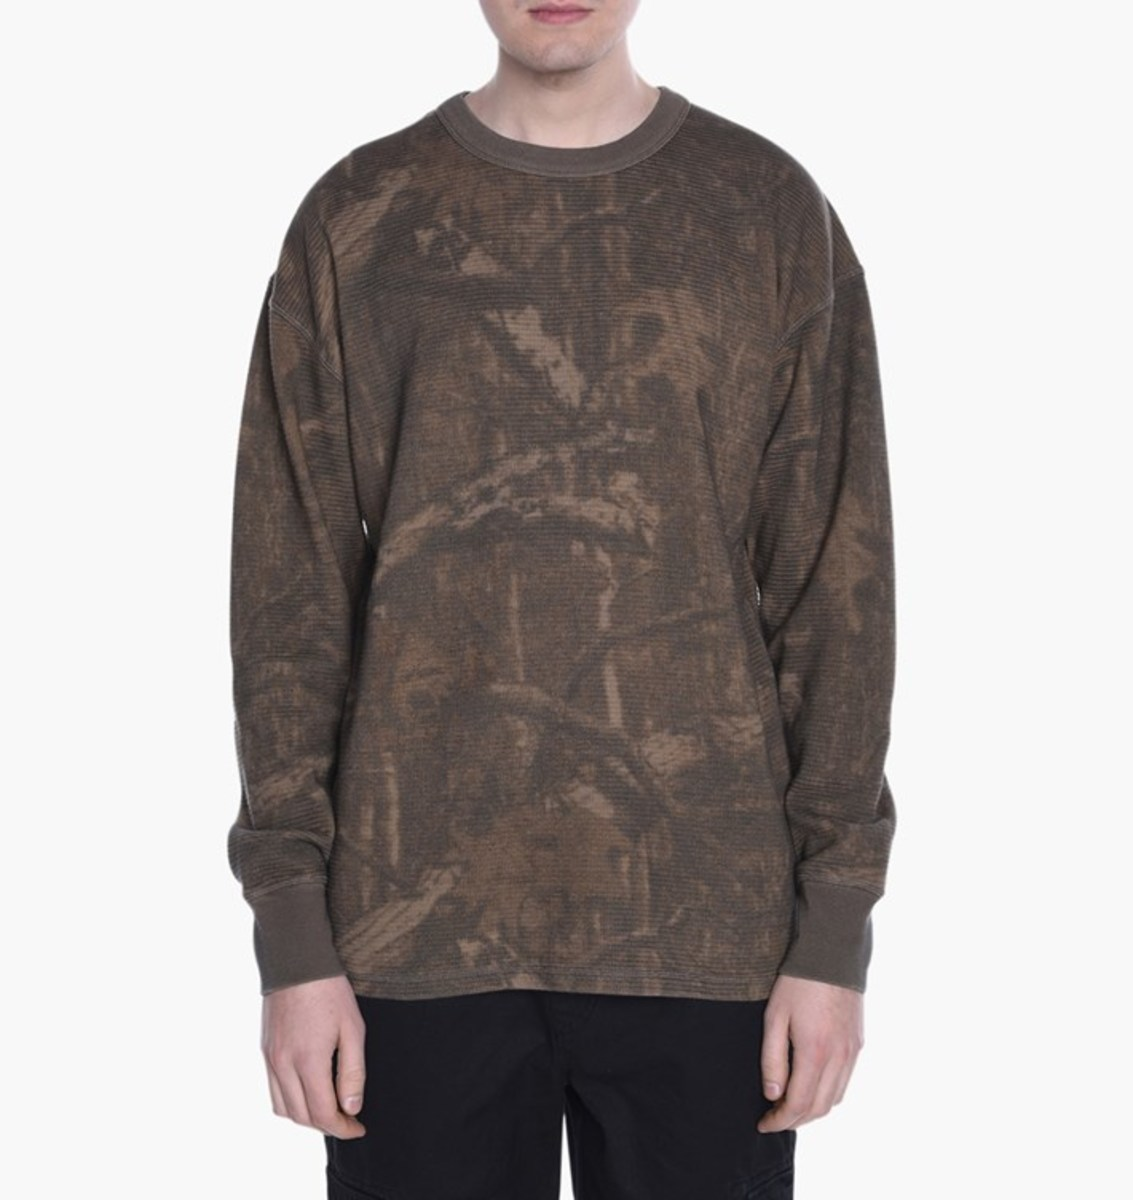 yeezy-season-3-thermal-long-sleeve.jpg